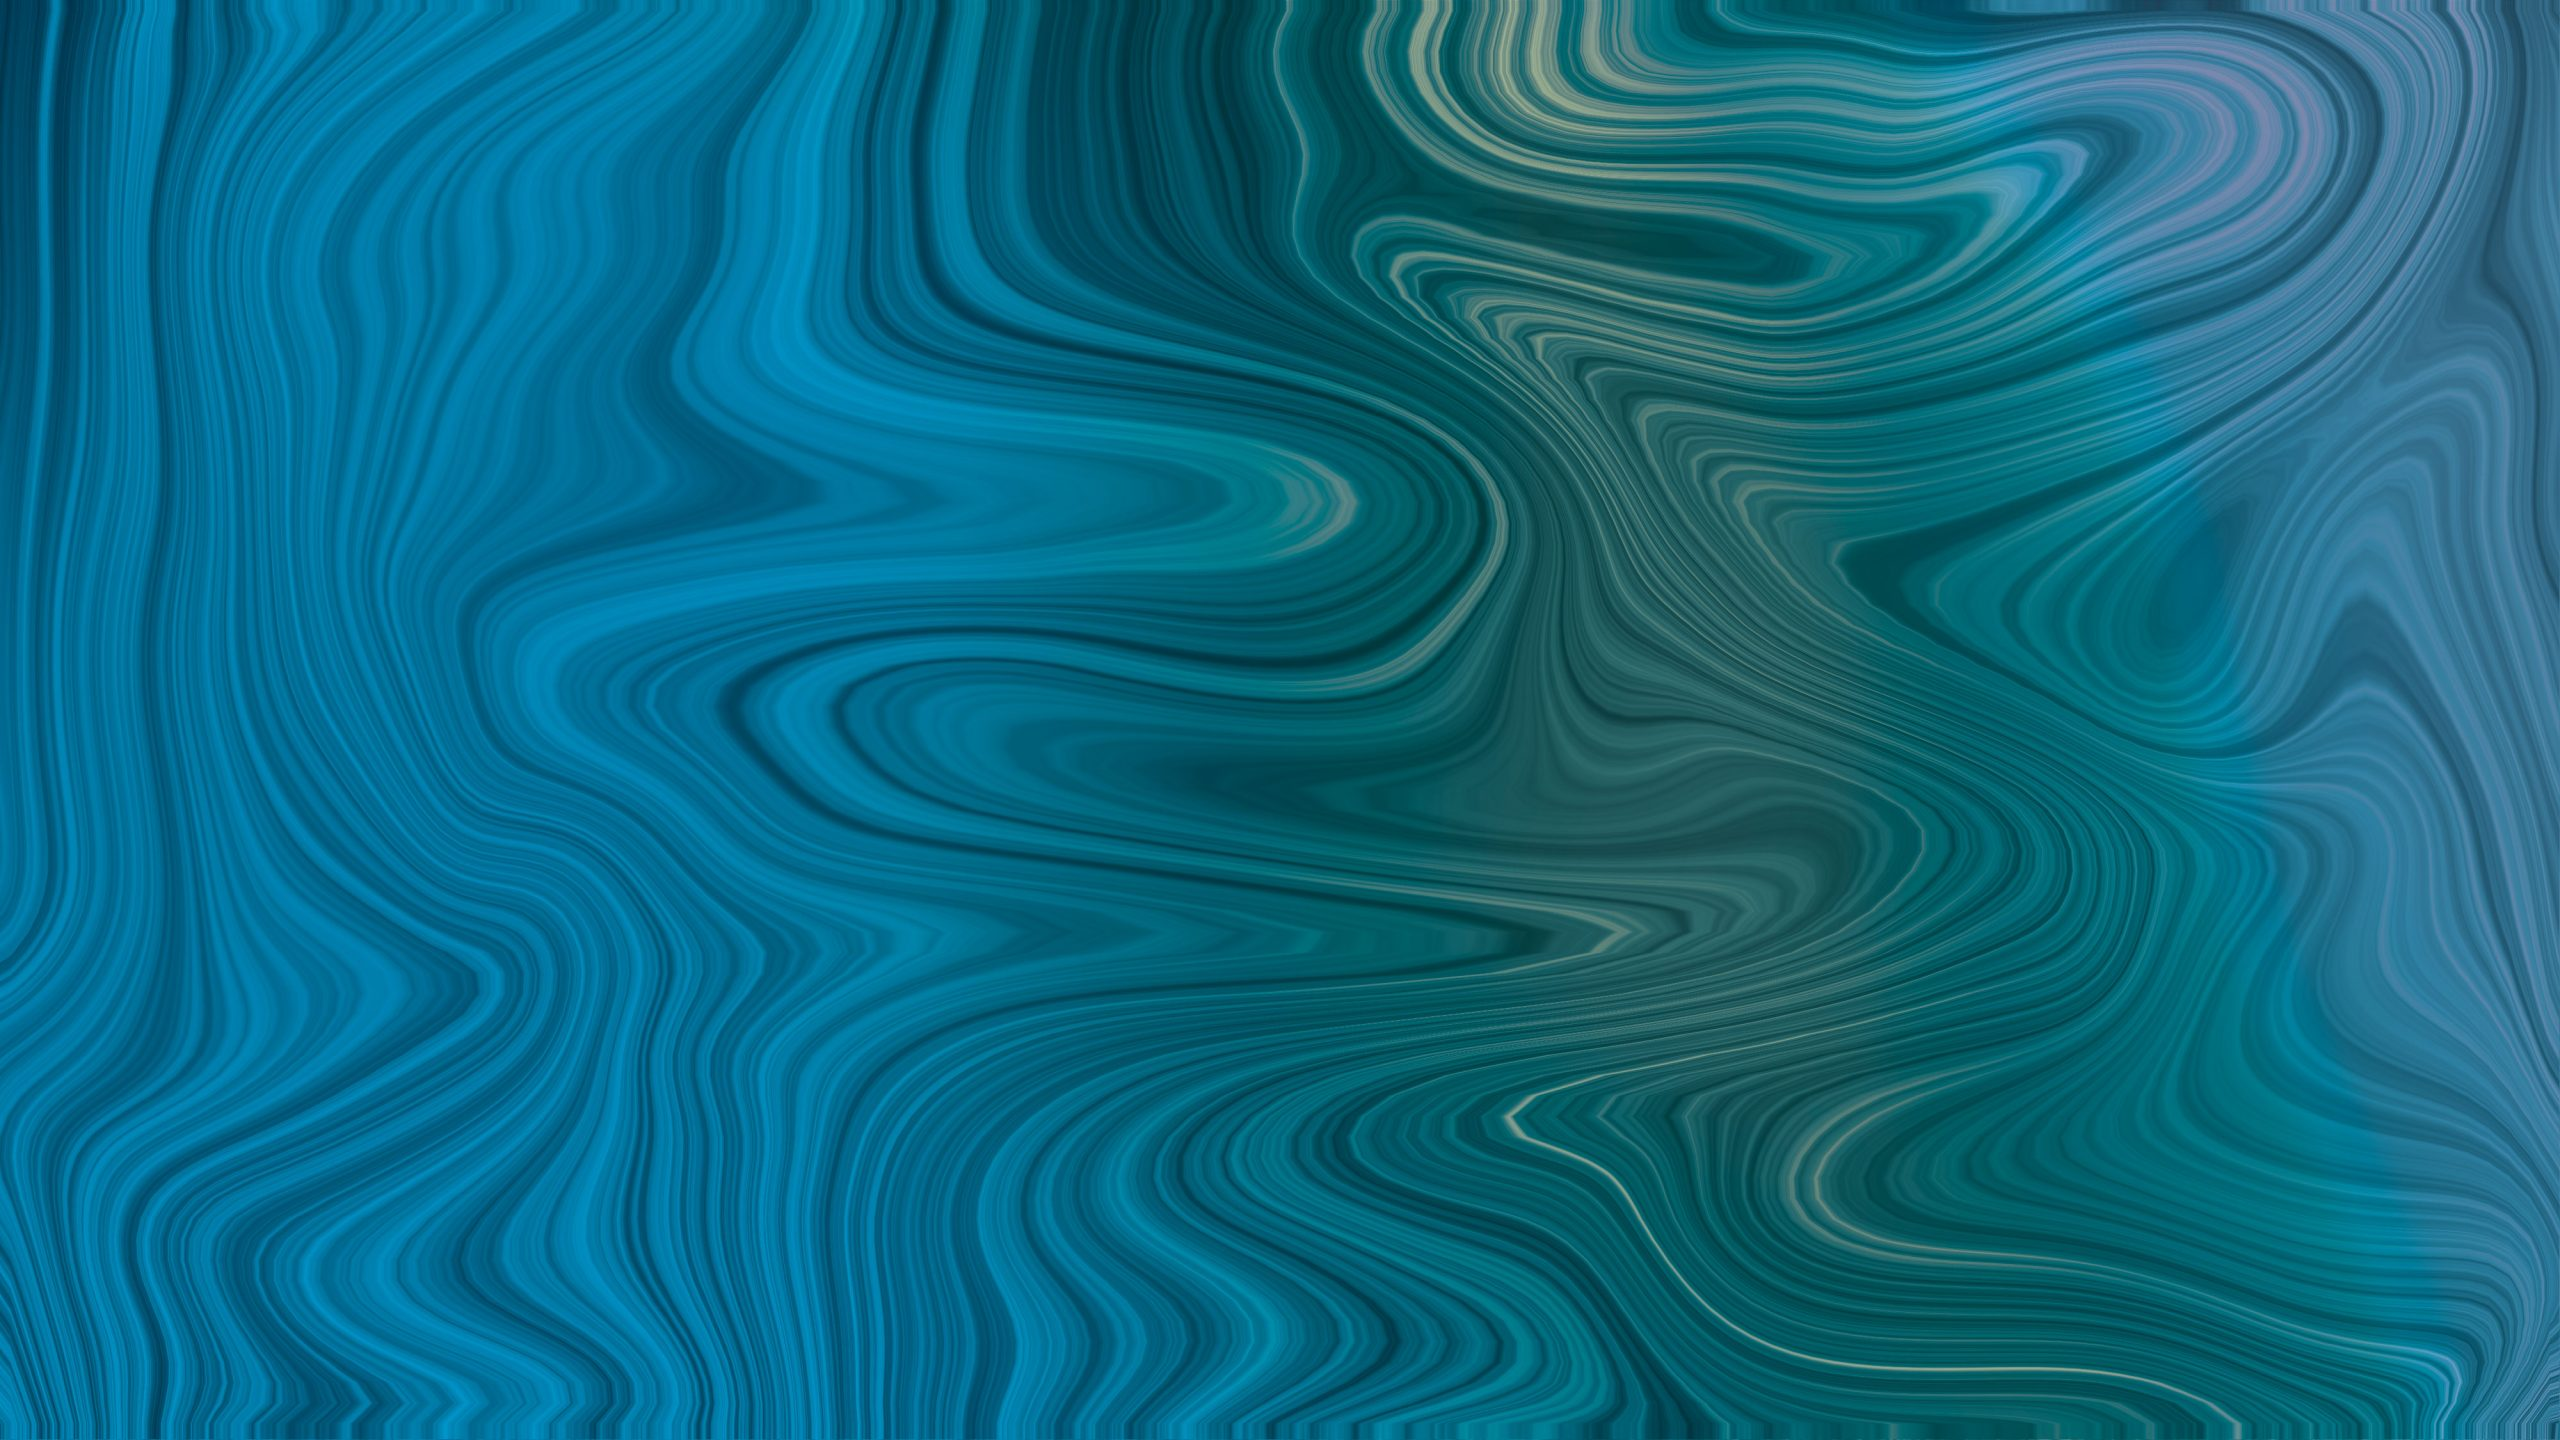 Blue pattern abstract background